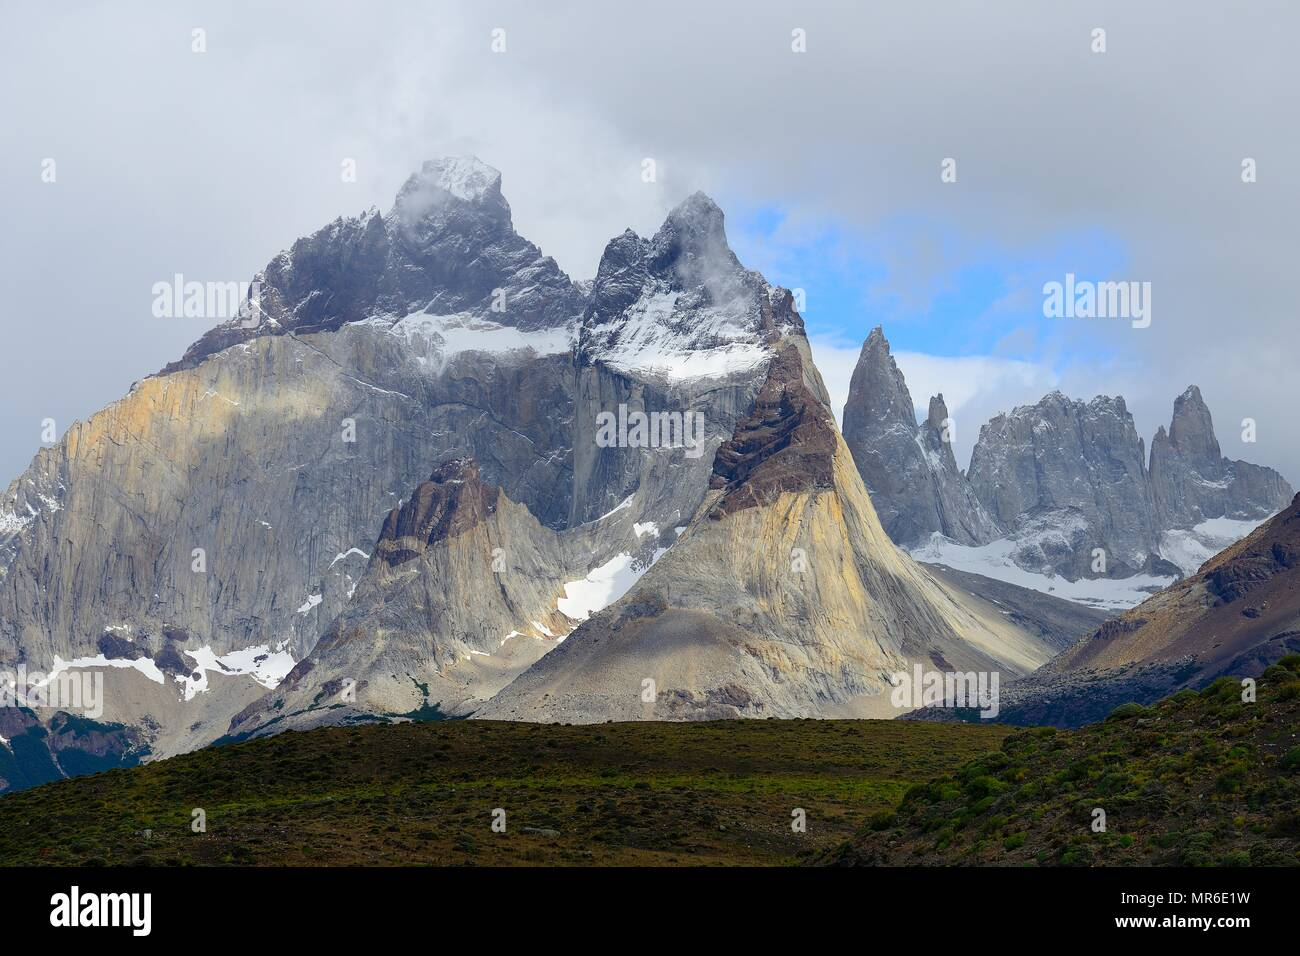 Cuernos del Paine massif with rising clouds, Torres del Paine National Park, Última Esperanza Province, Chile - Stock Image